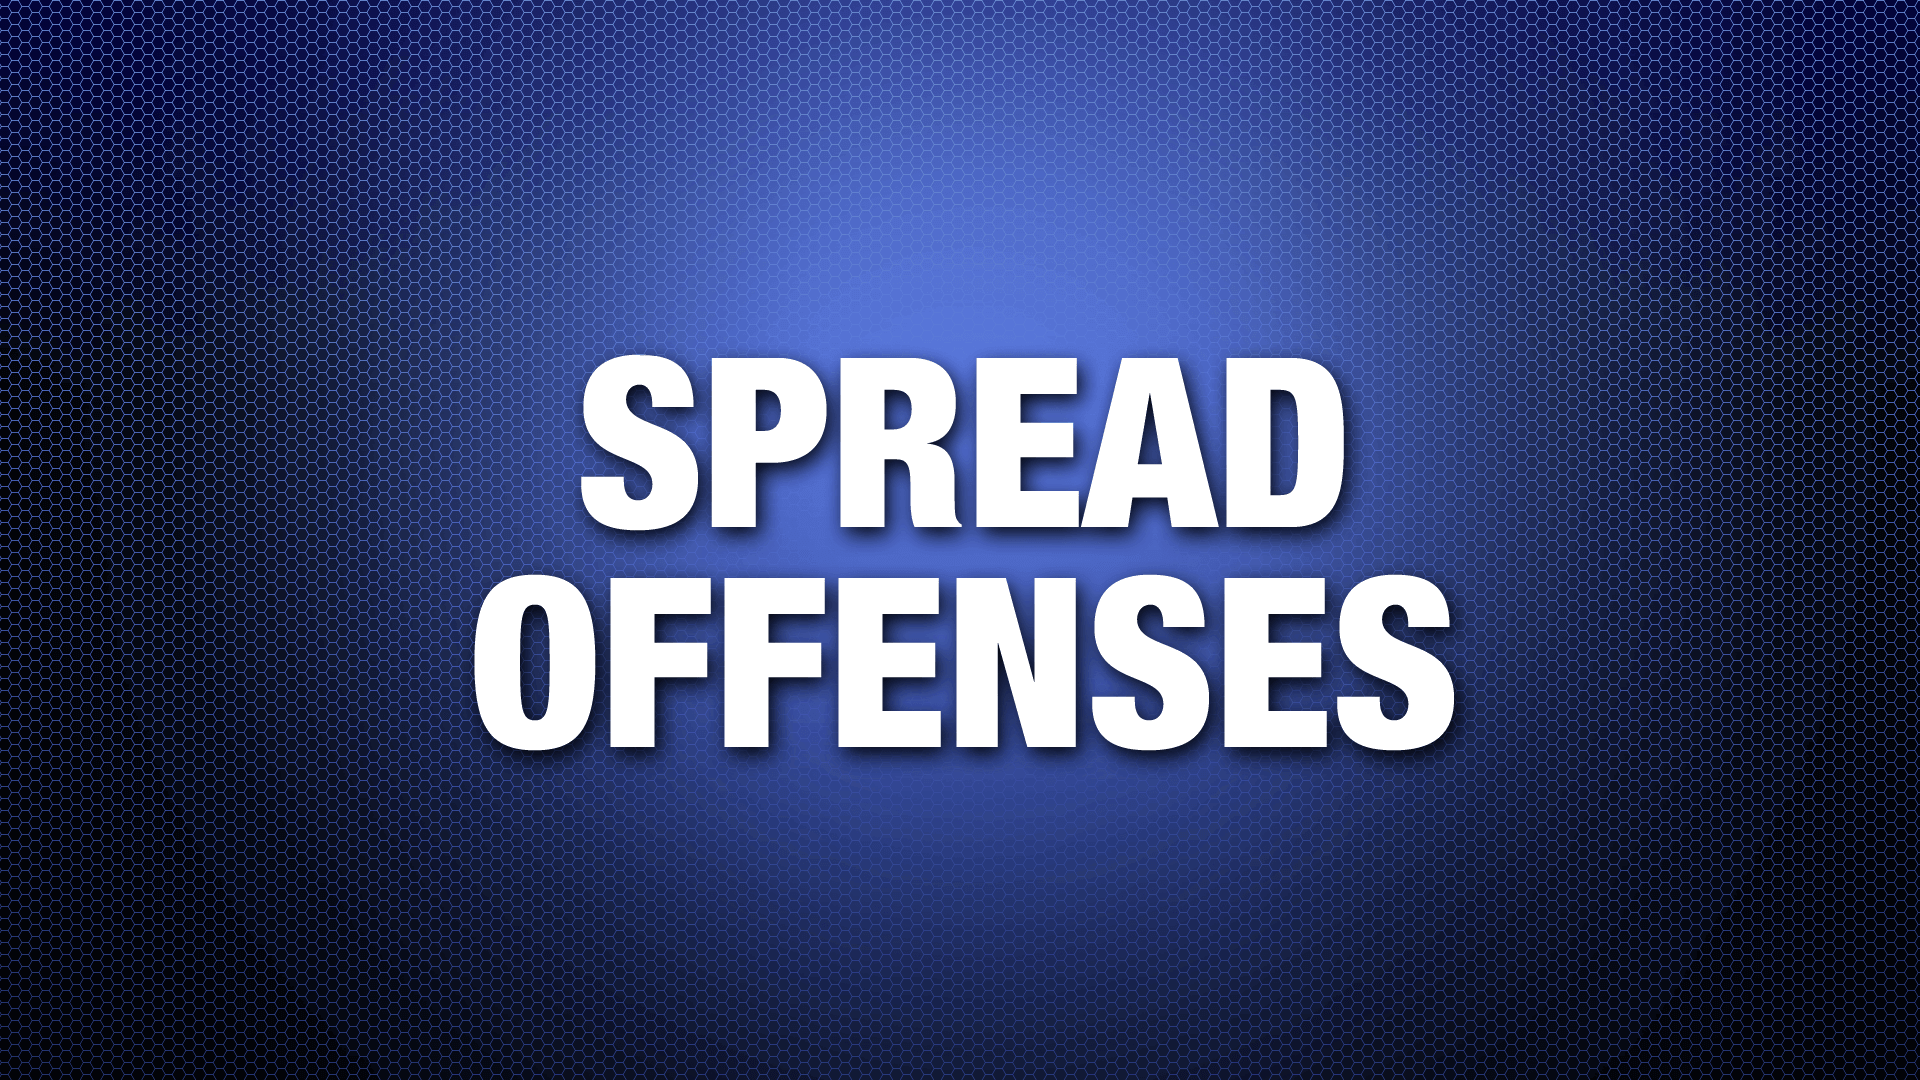 SpreadOffenses